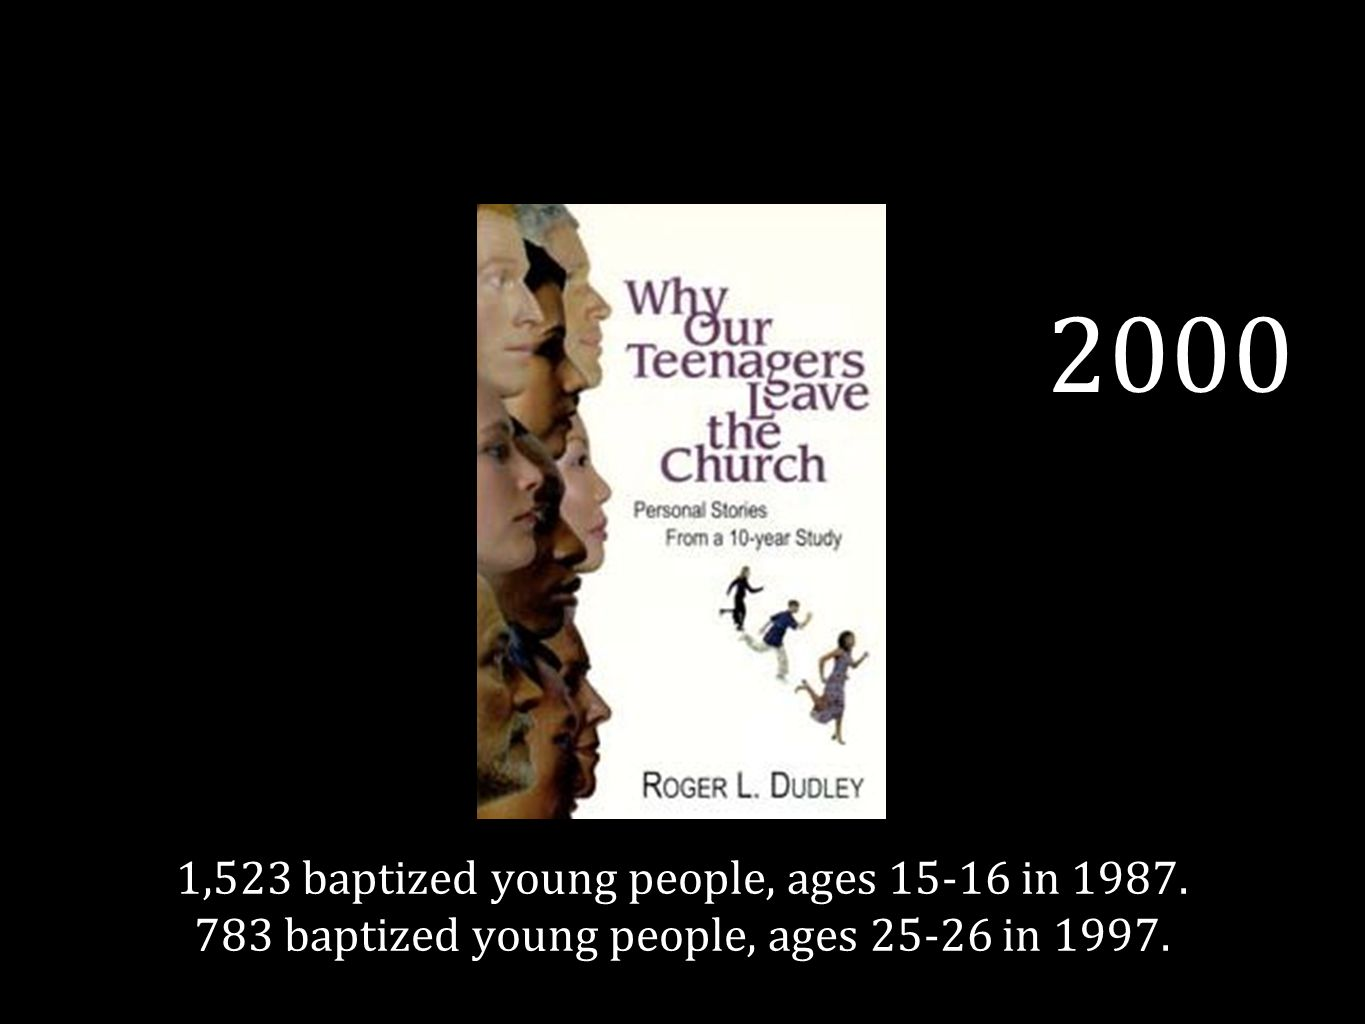 1,523 baptized young people, ages 15-16 in 1987. 783 baptized young people, ages 25-26 in 1997.